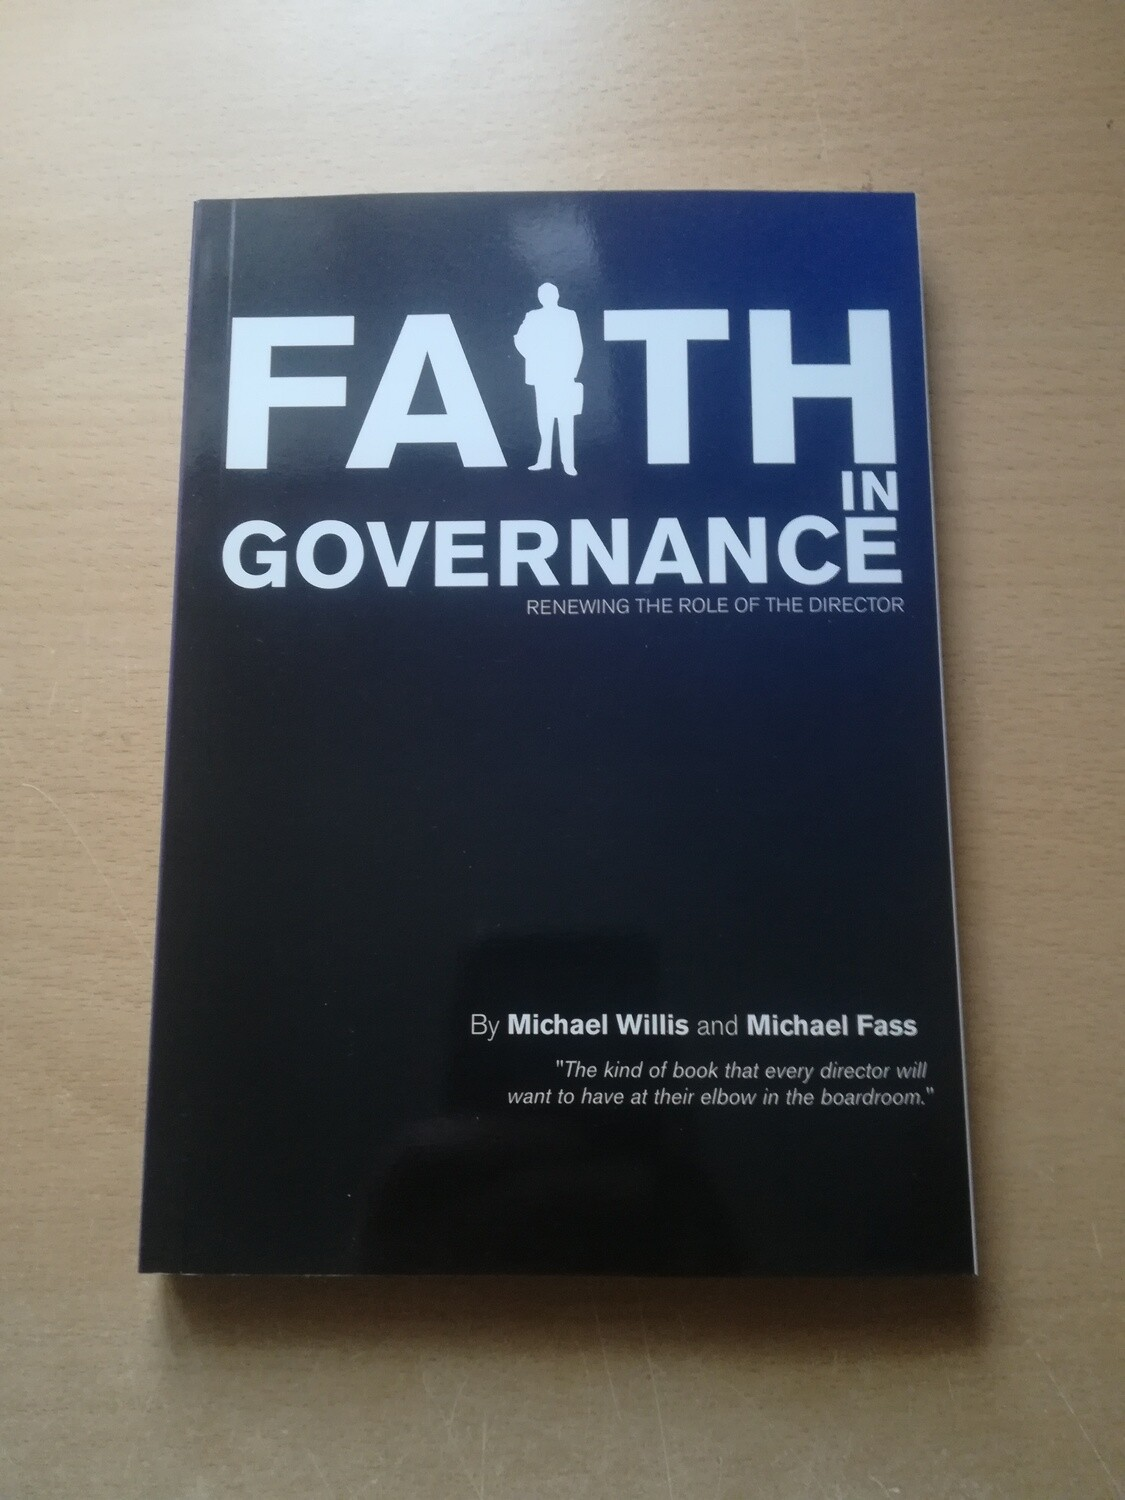 Faith in Governance - Michael Willis & Michael Fass